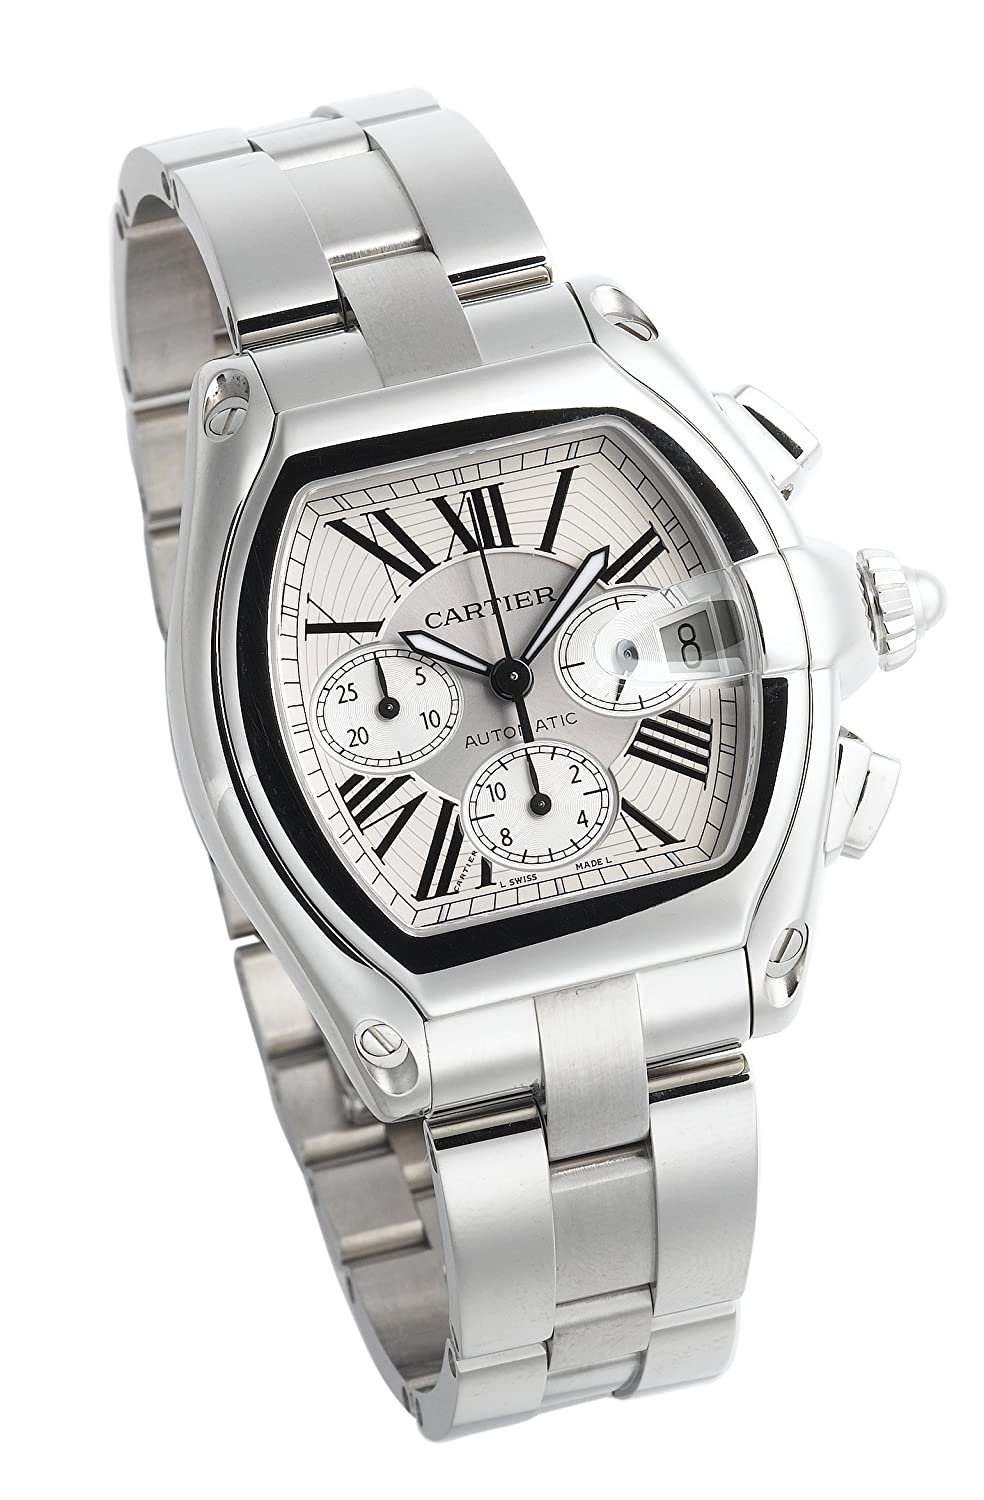 f3207158247 Amazon.com  Cartier Men s W62019X6 Roadster Automatic Chronograph Watch   Cartier  Watches